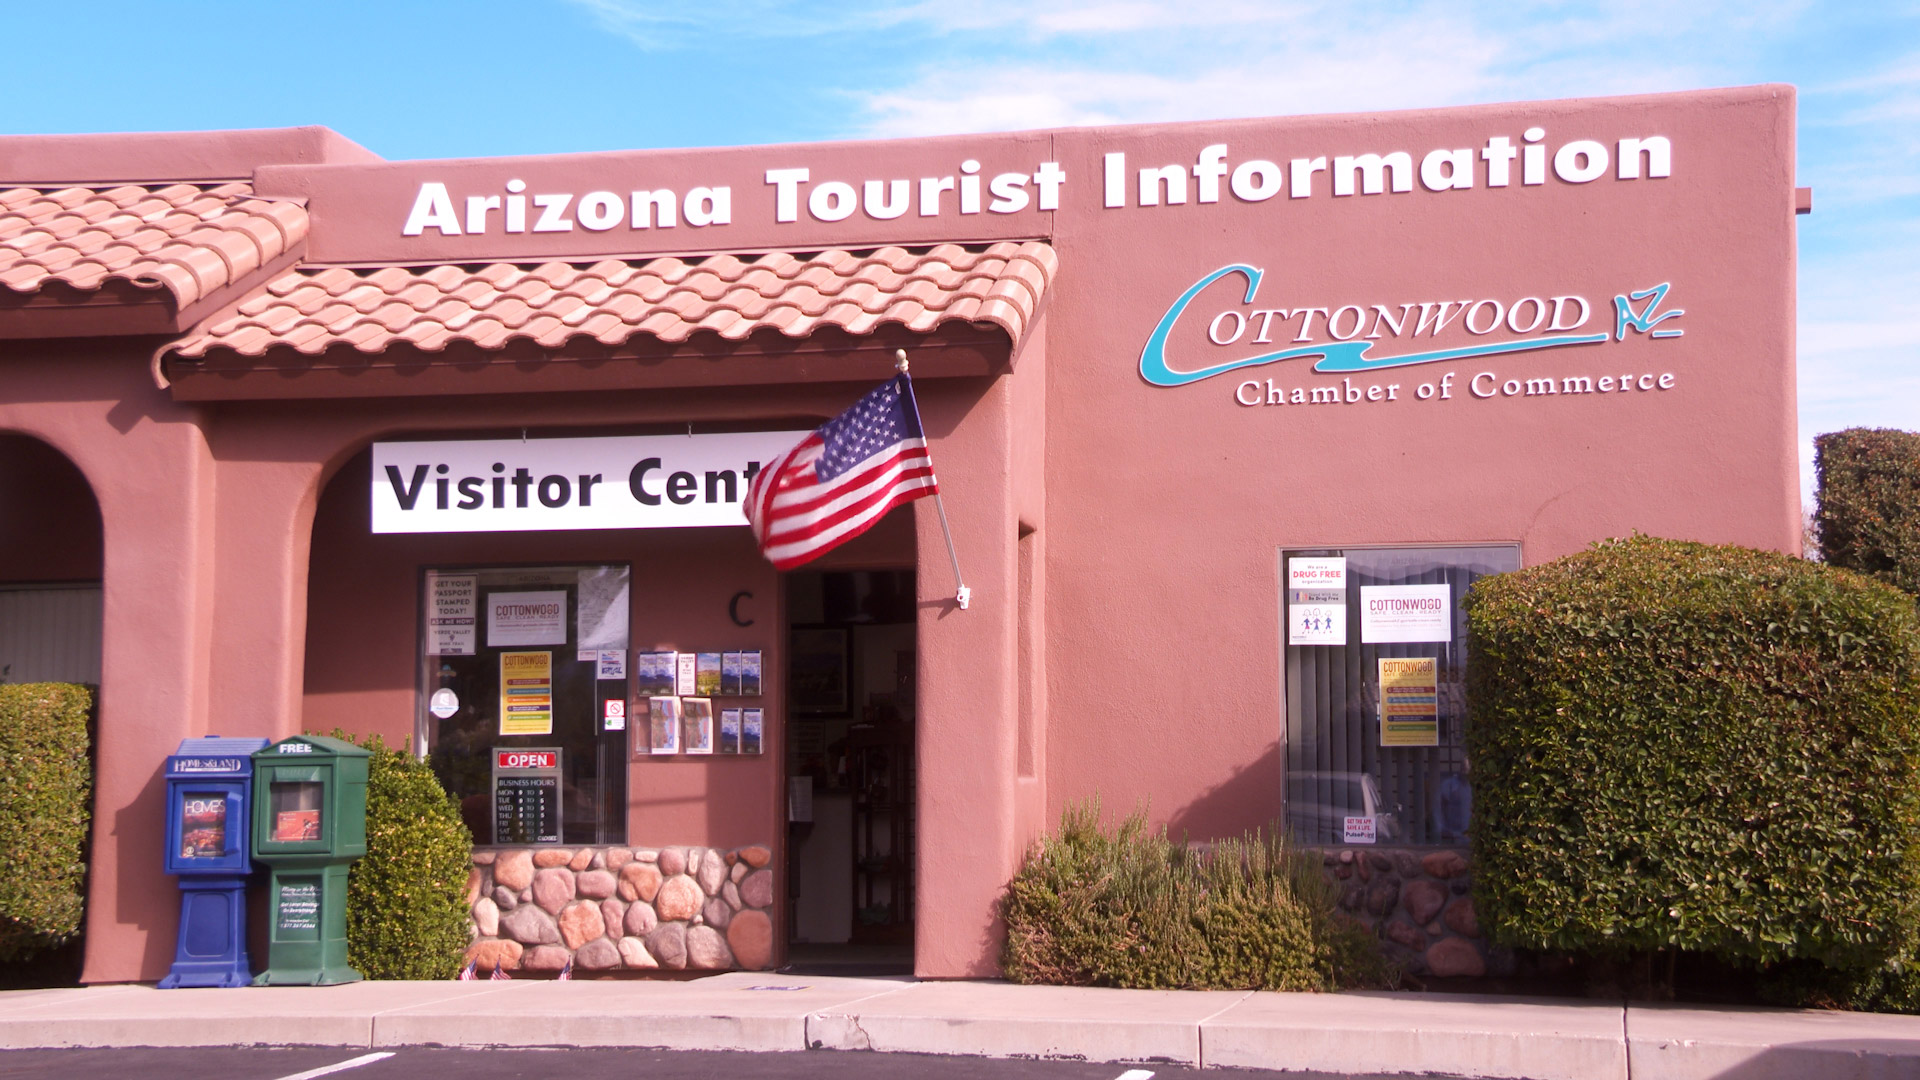 Cottonwood Chamber of Commerce Visitor Center entrance